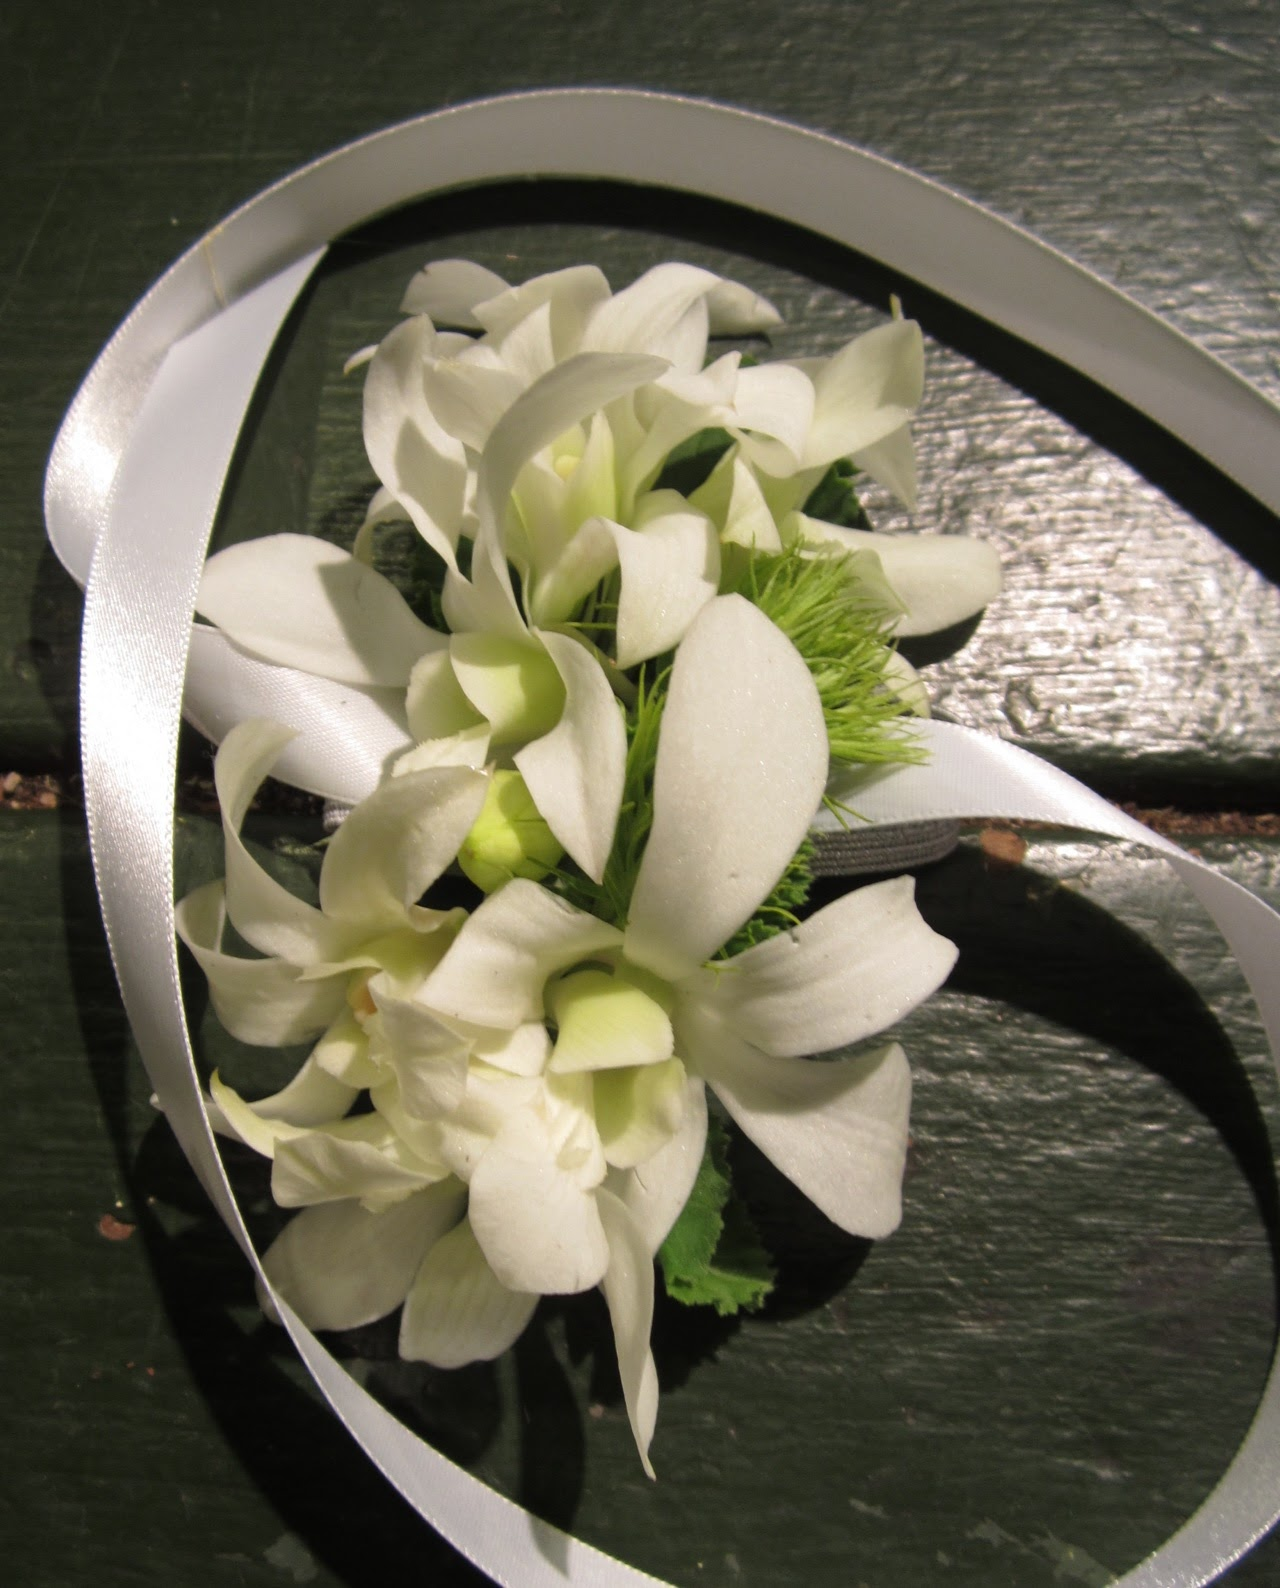 Sammys flowers white wedding corsages flowers for corsages need to hold up well outside of water our favorite corsage flowers include roses spray roses freesia orchids mini calla lilies mightylinksfo